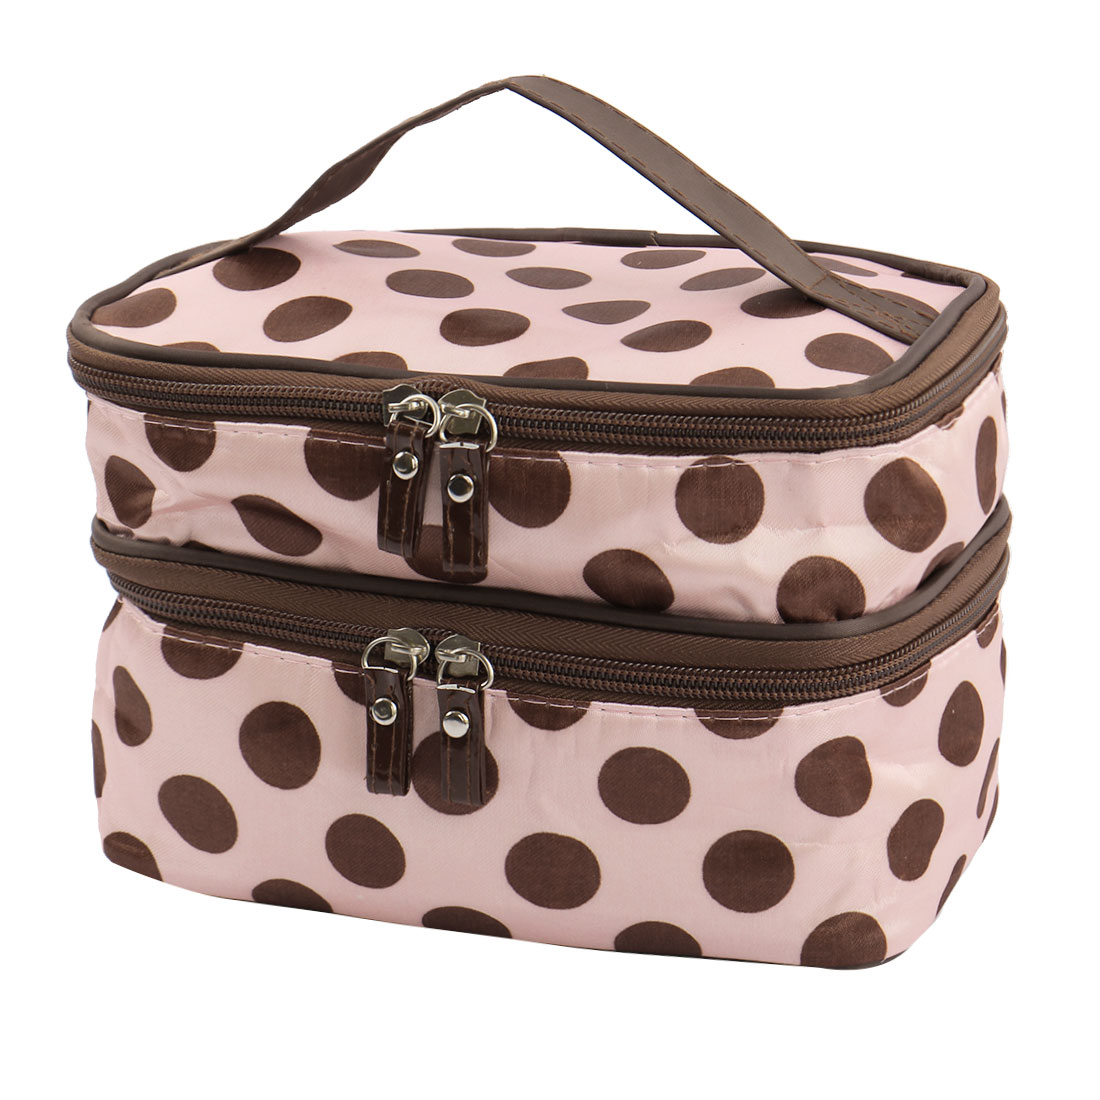 Zipped Cosmetic Bag Double Layer Make Up Case Handbag Pouch (Pink+Brown Dots)